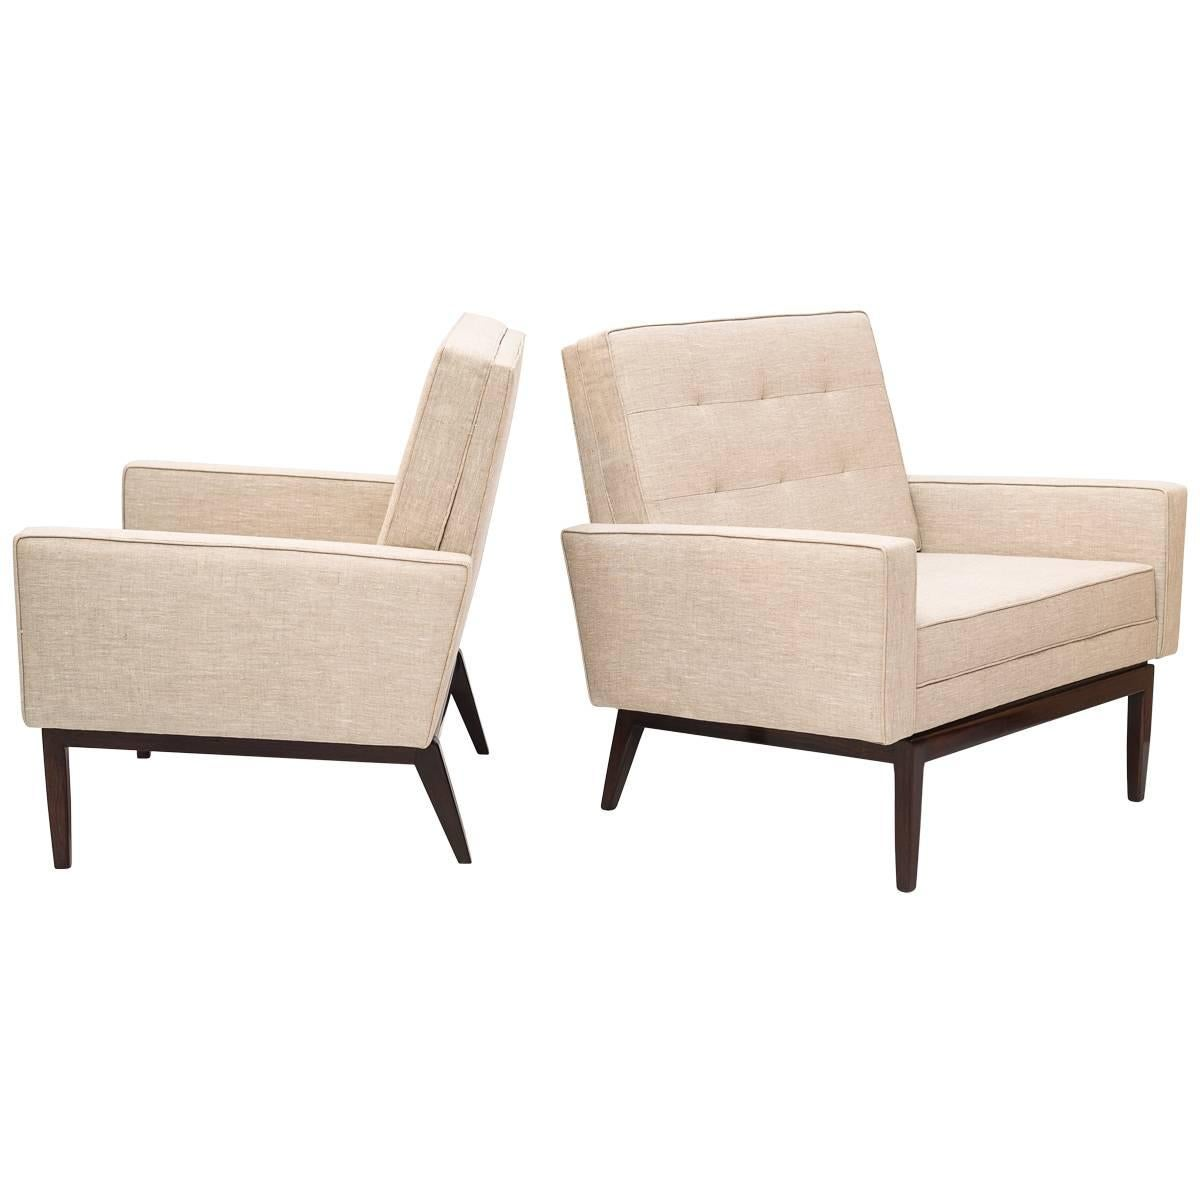 Forma Midcentury brazilian Armchair with Rosewood base, 1960s